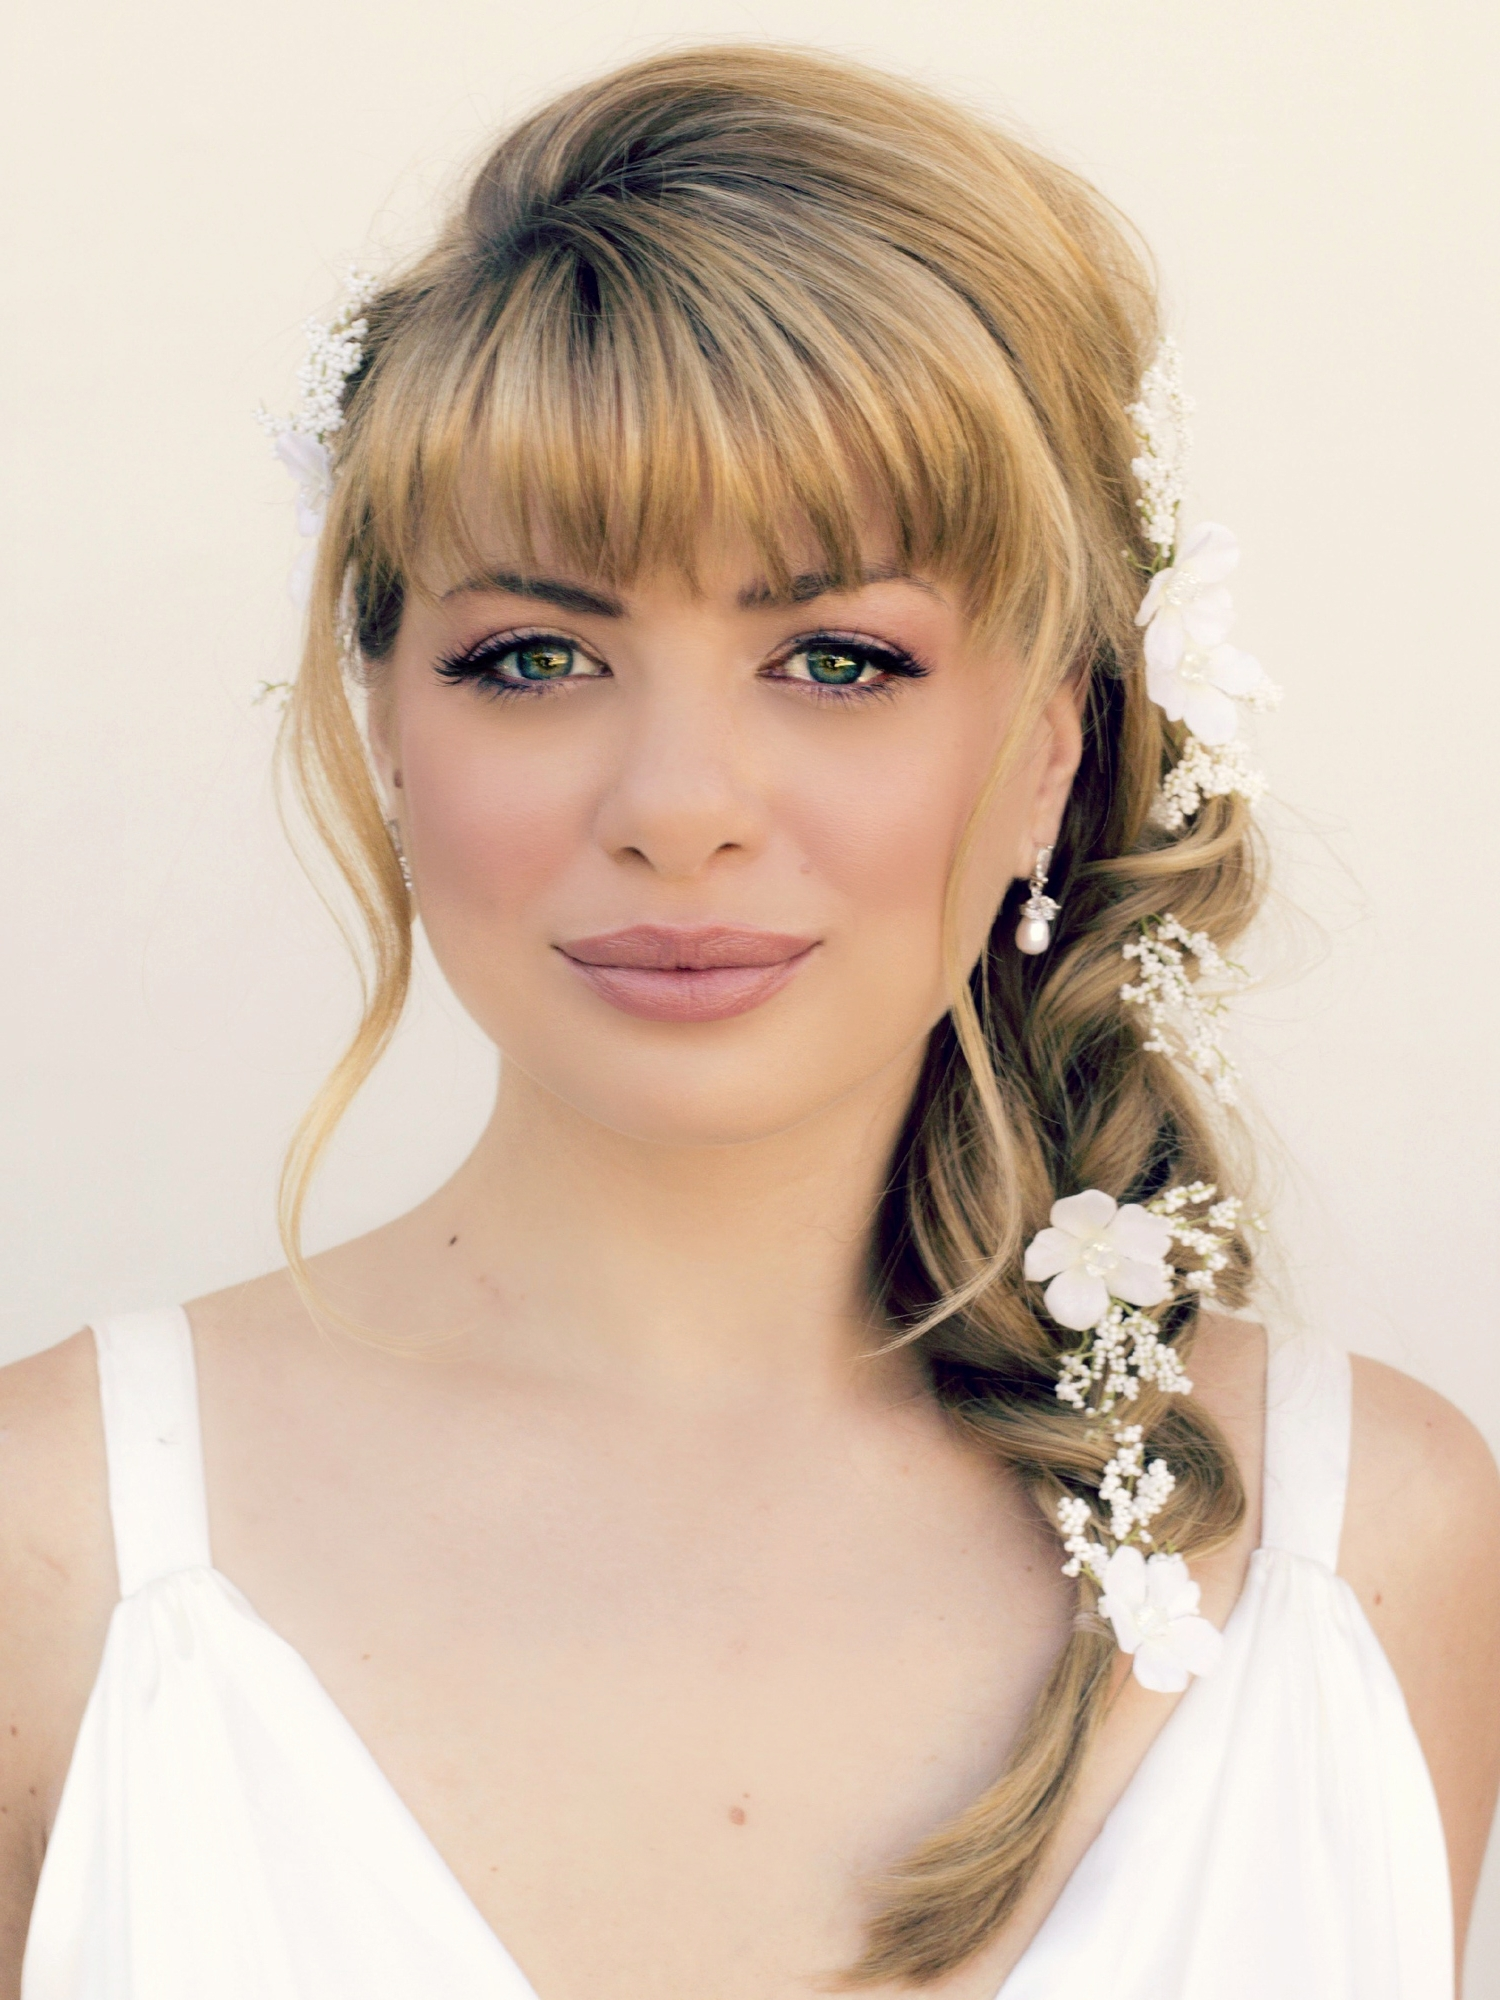 Awesome Cute Hairstyles For Medium Length Hair With Bangs – Hair For Updo Hairstyles With Bangs For Medium Length Hair (View 11 of 15)